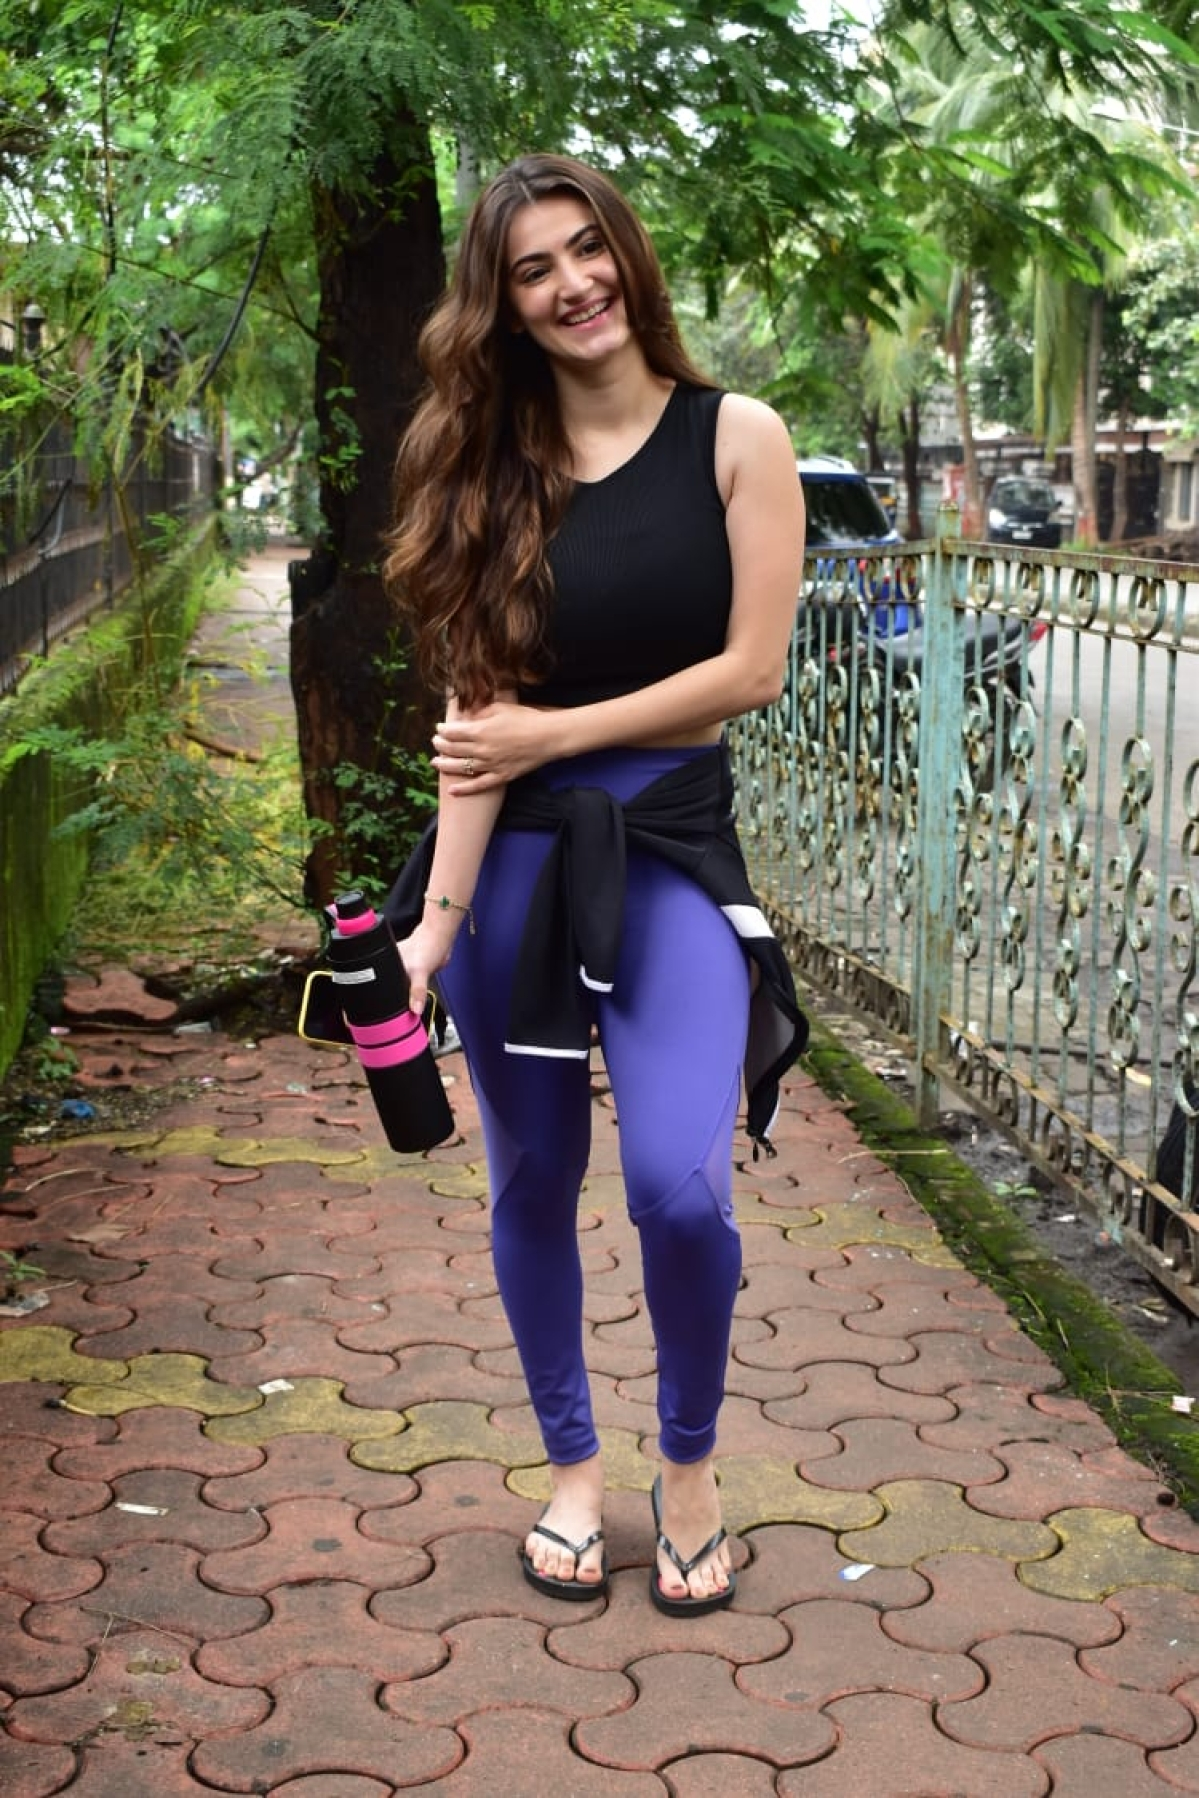 Shivalika Oberoi on her way to gym